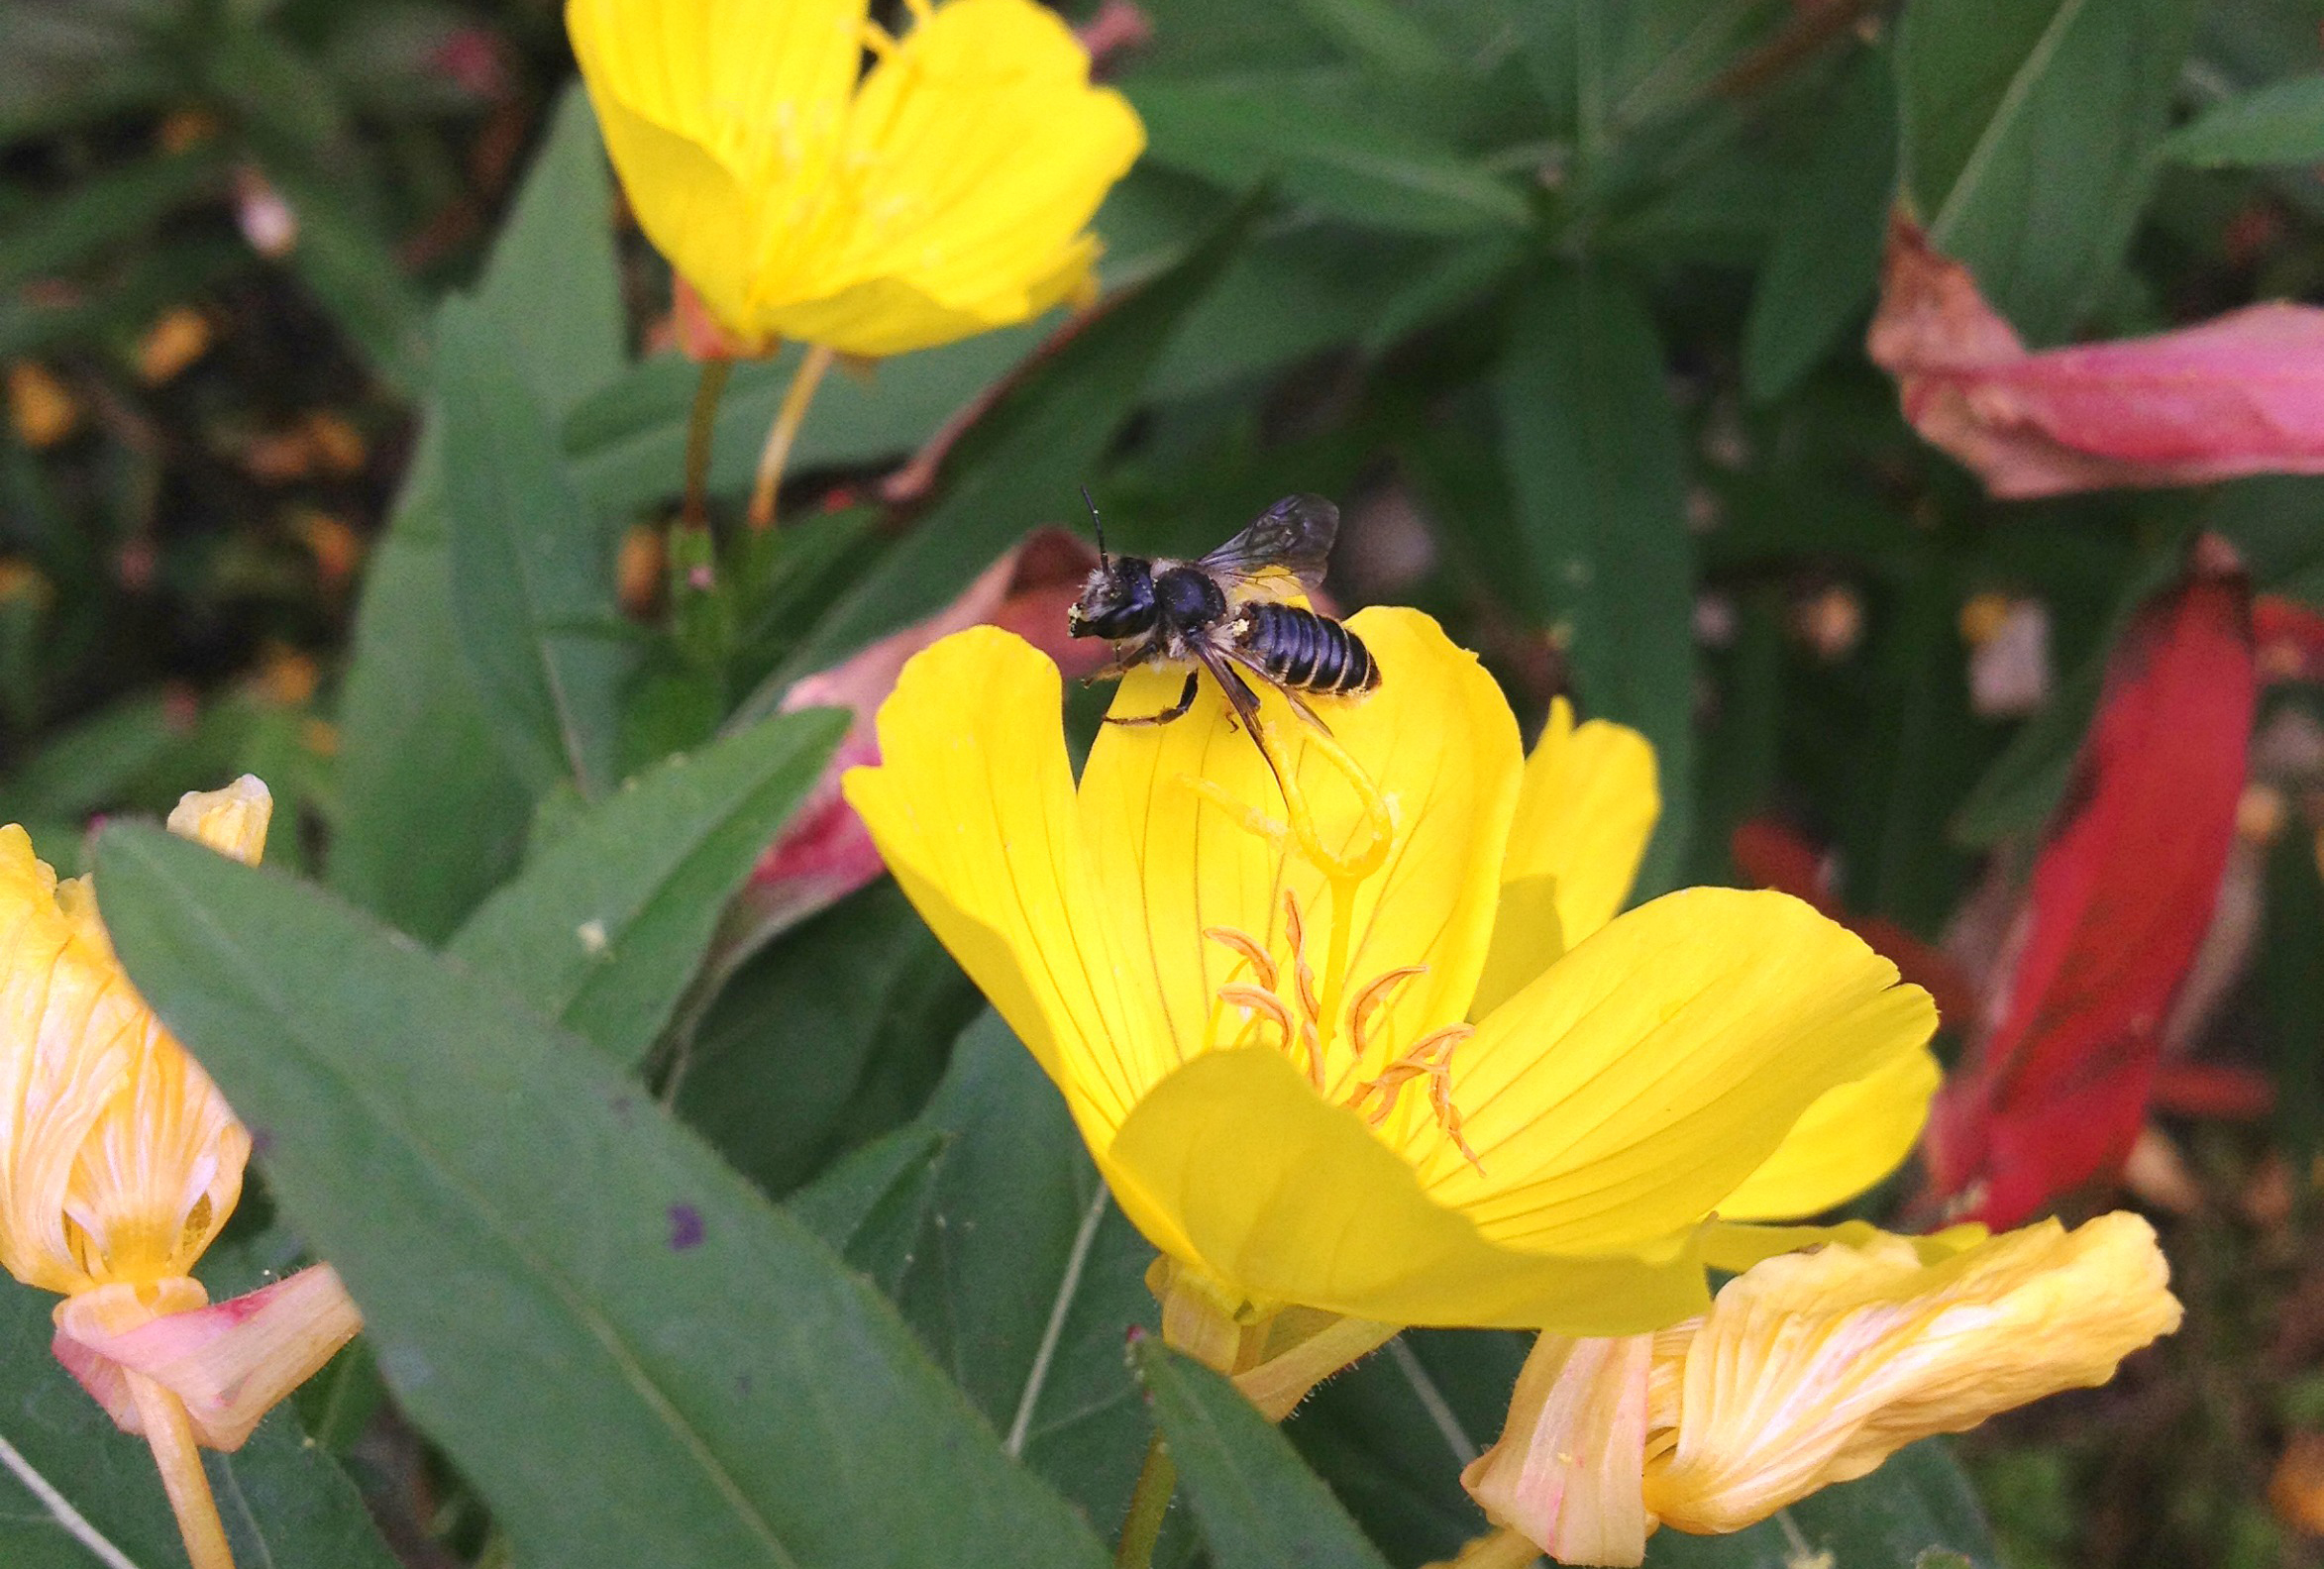 Megachile oenotherae, a species of bee, rests on a flower.